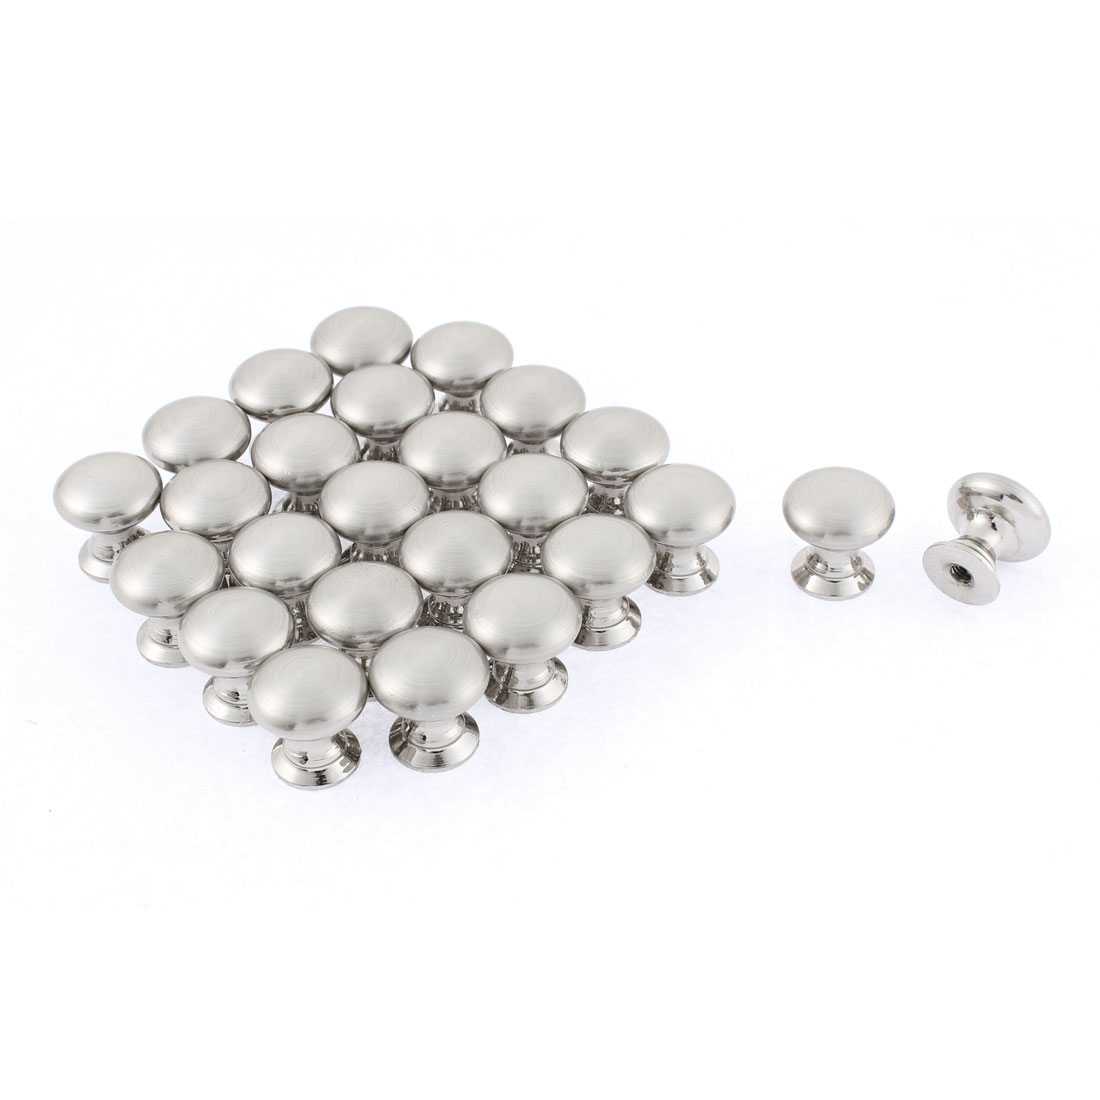 Home Office Cabinet Drawer Round Shape Pull Knob Silver Tone 13mm x 18mm 25Pcs